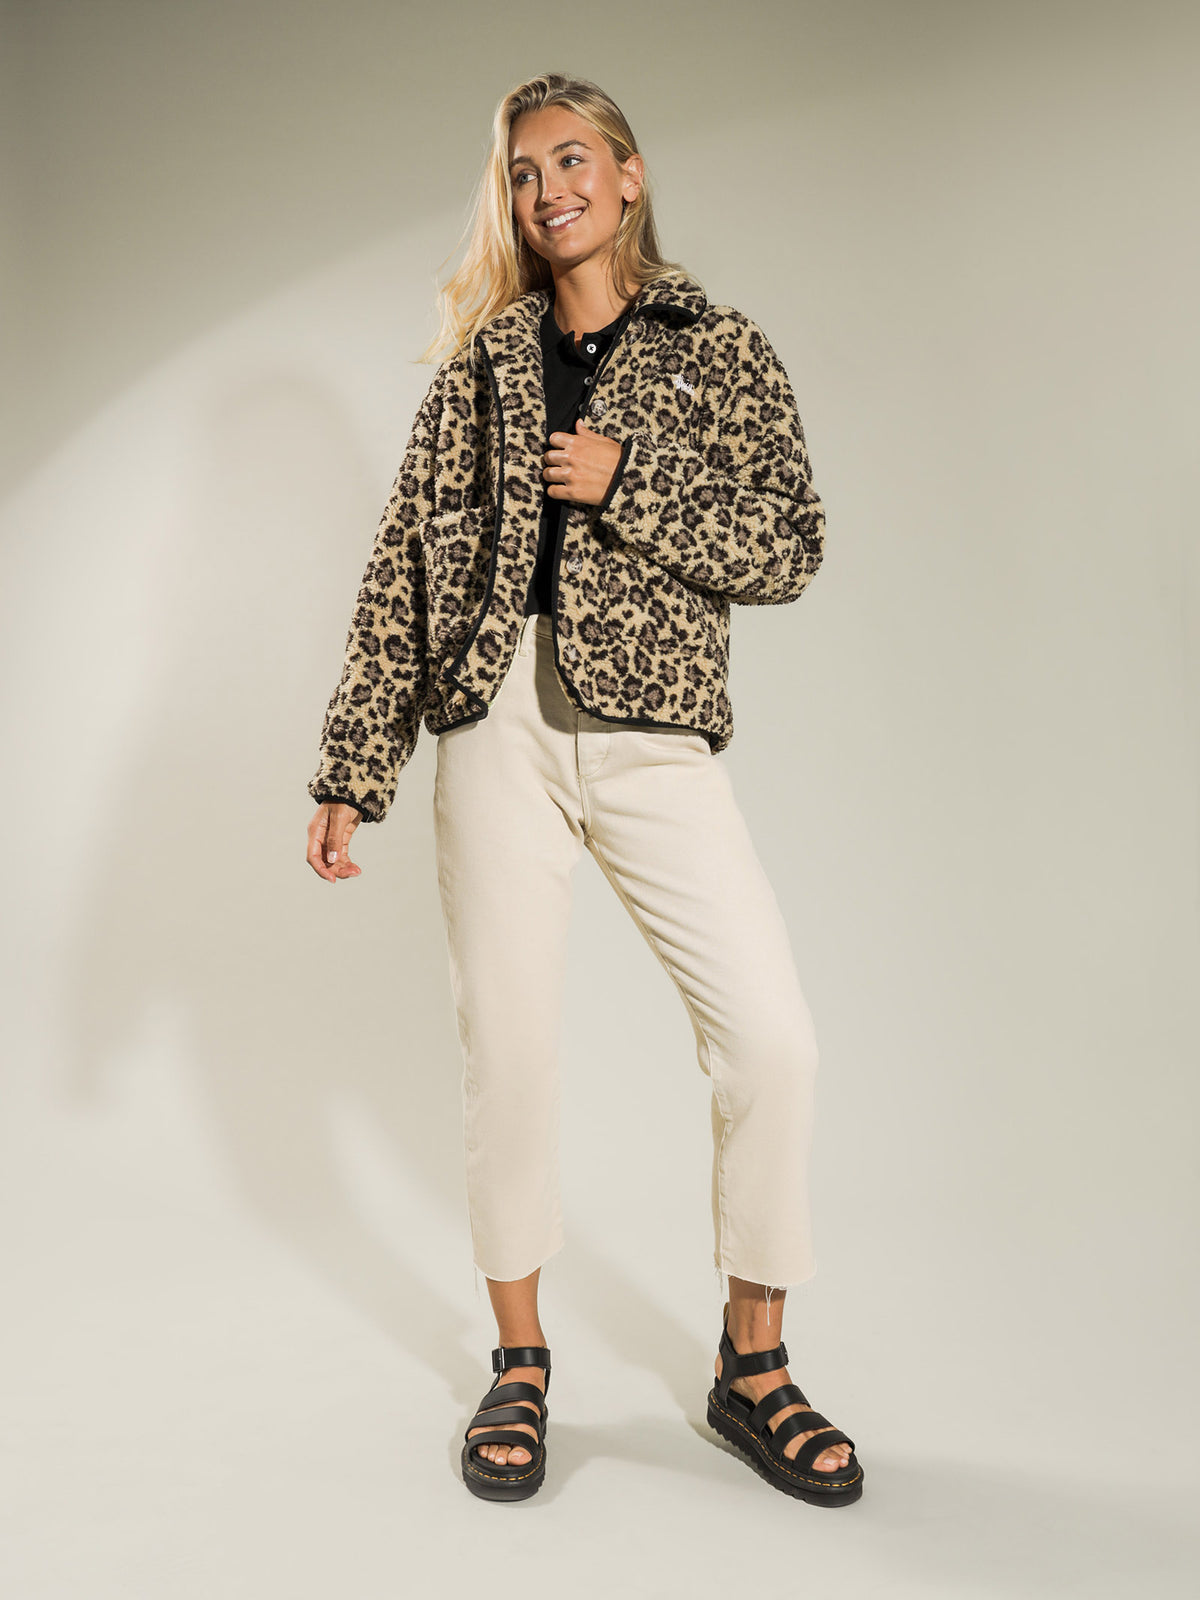 Graffiti Sherpa Jacket in Leopard